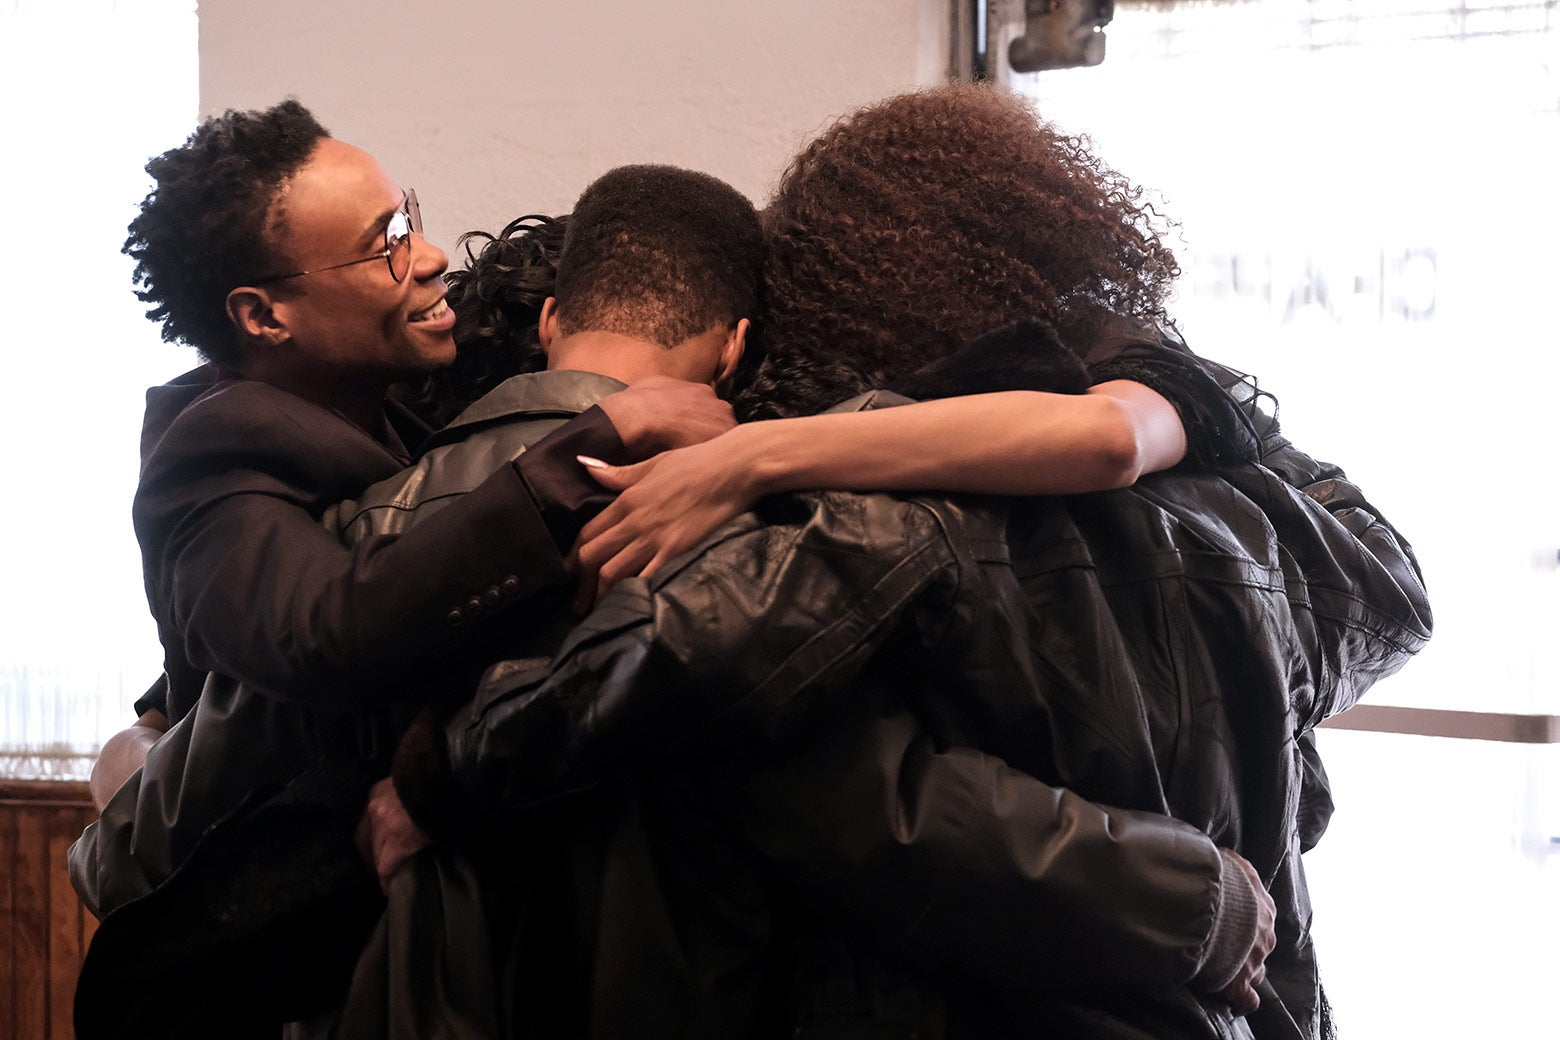 The characters engage in a group hug.